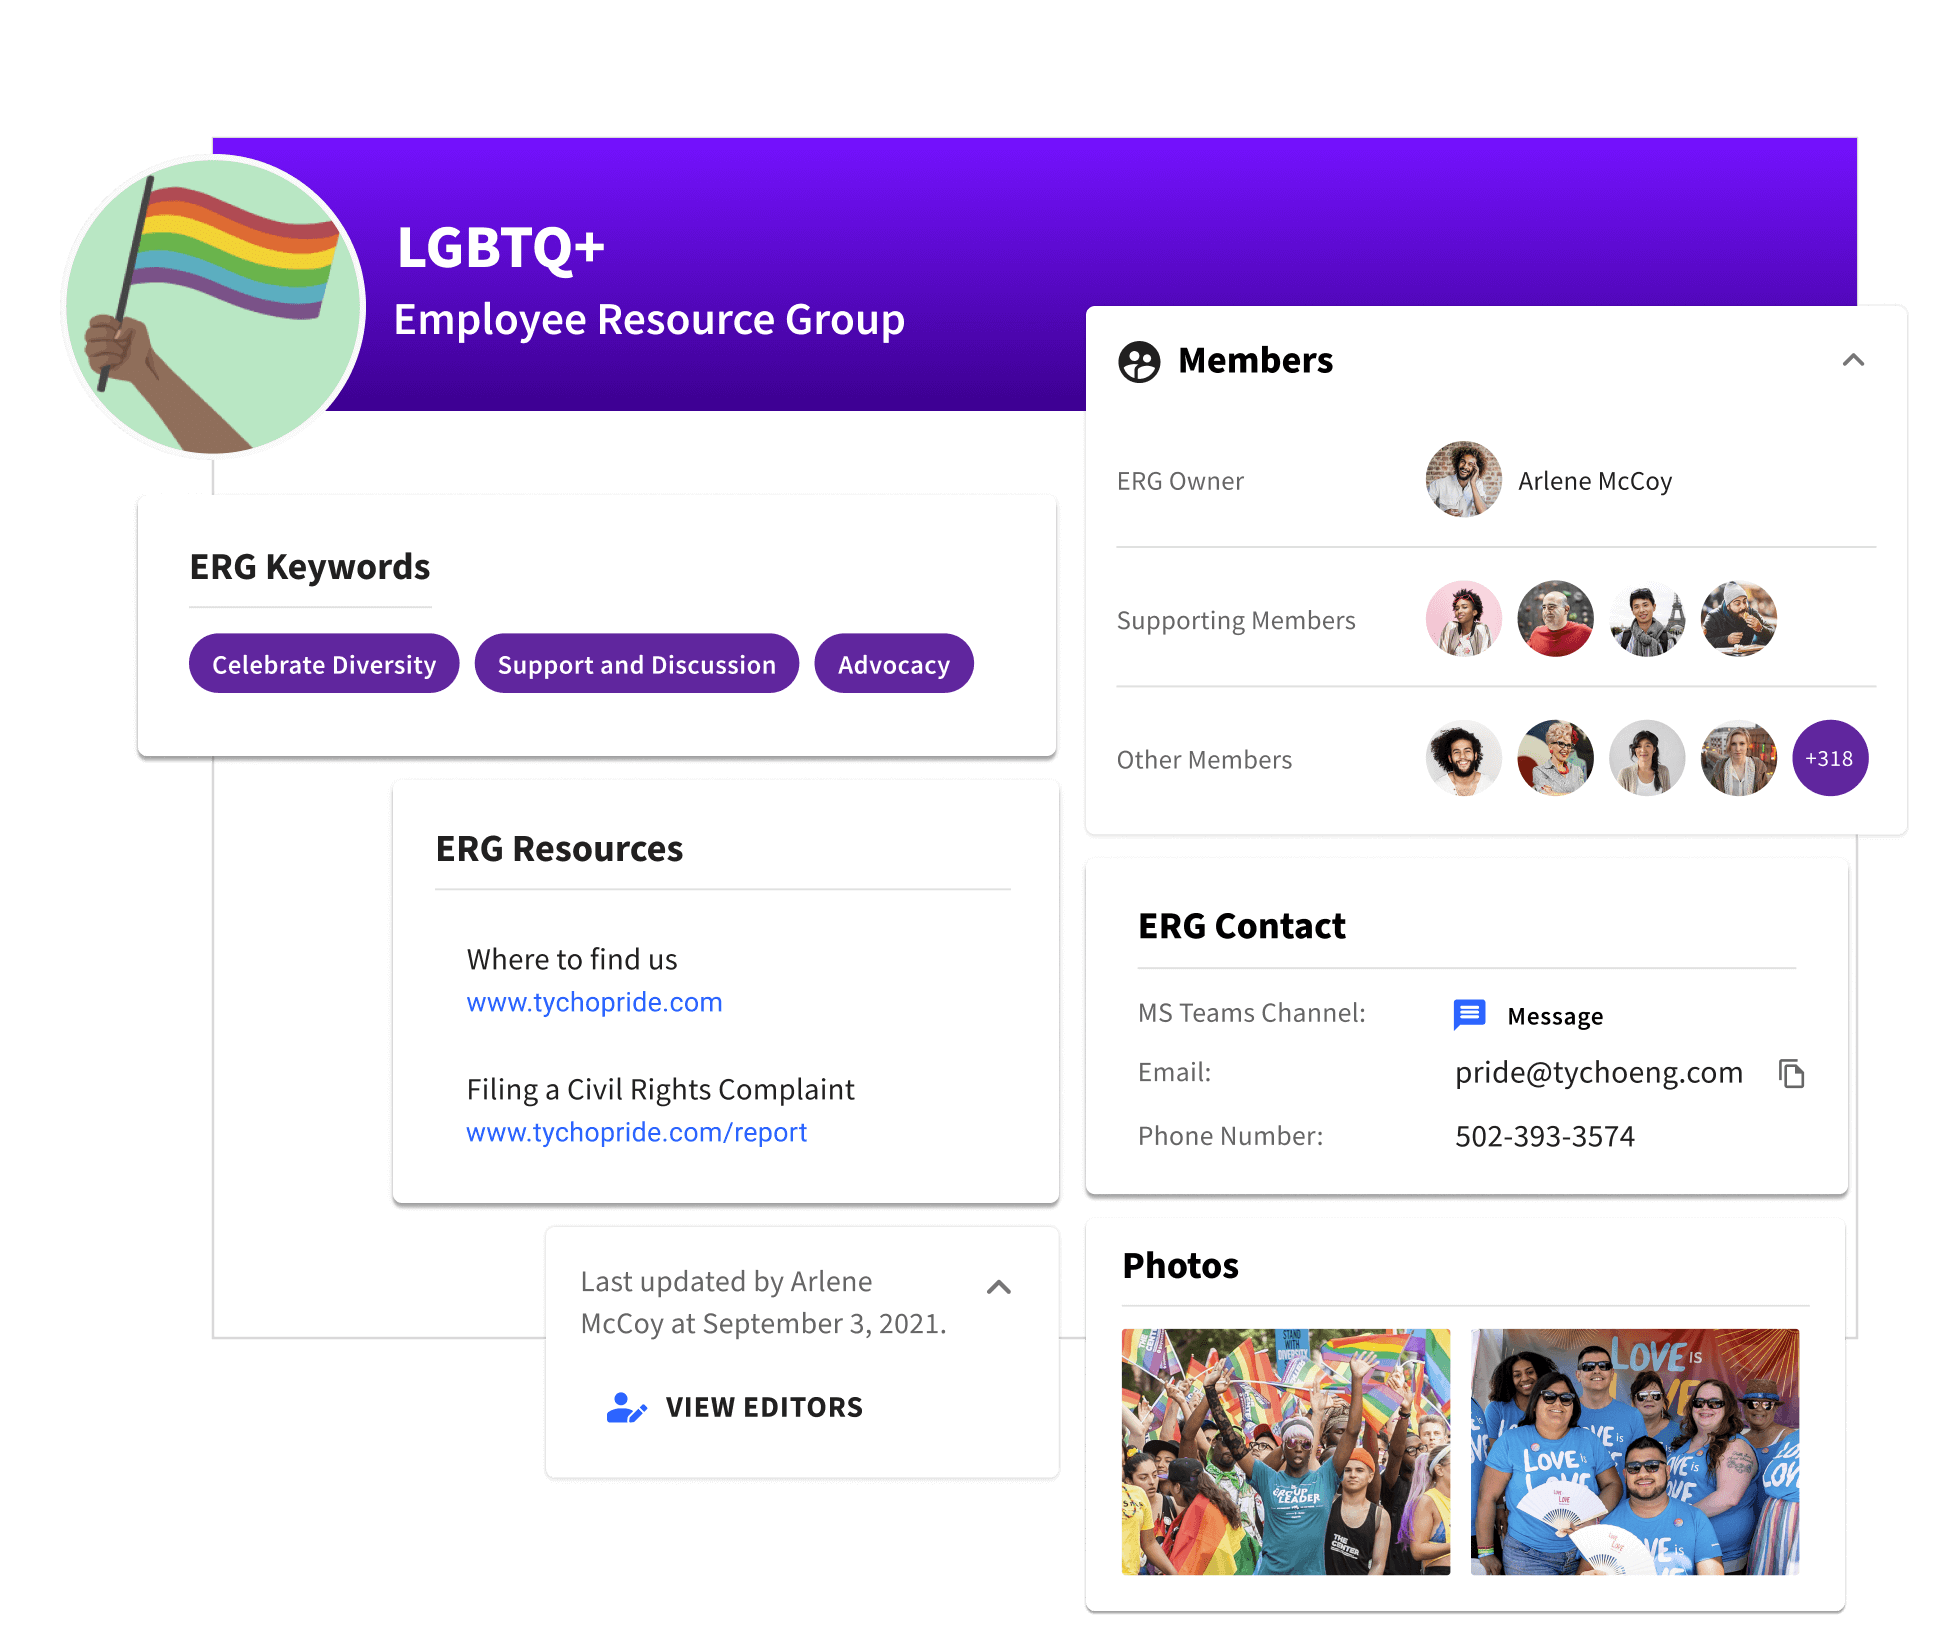 A profile for an employee resource group